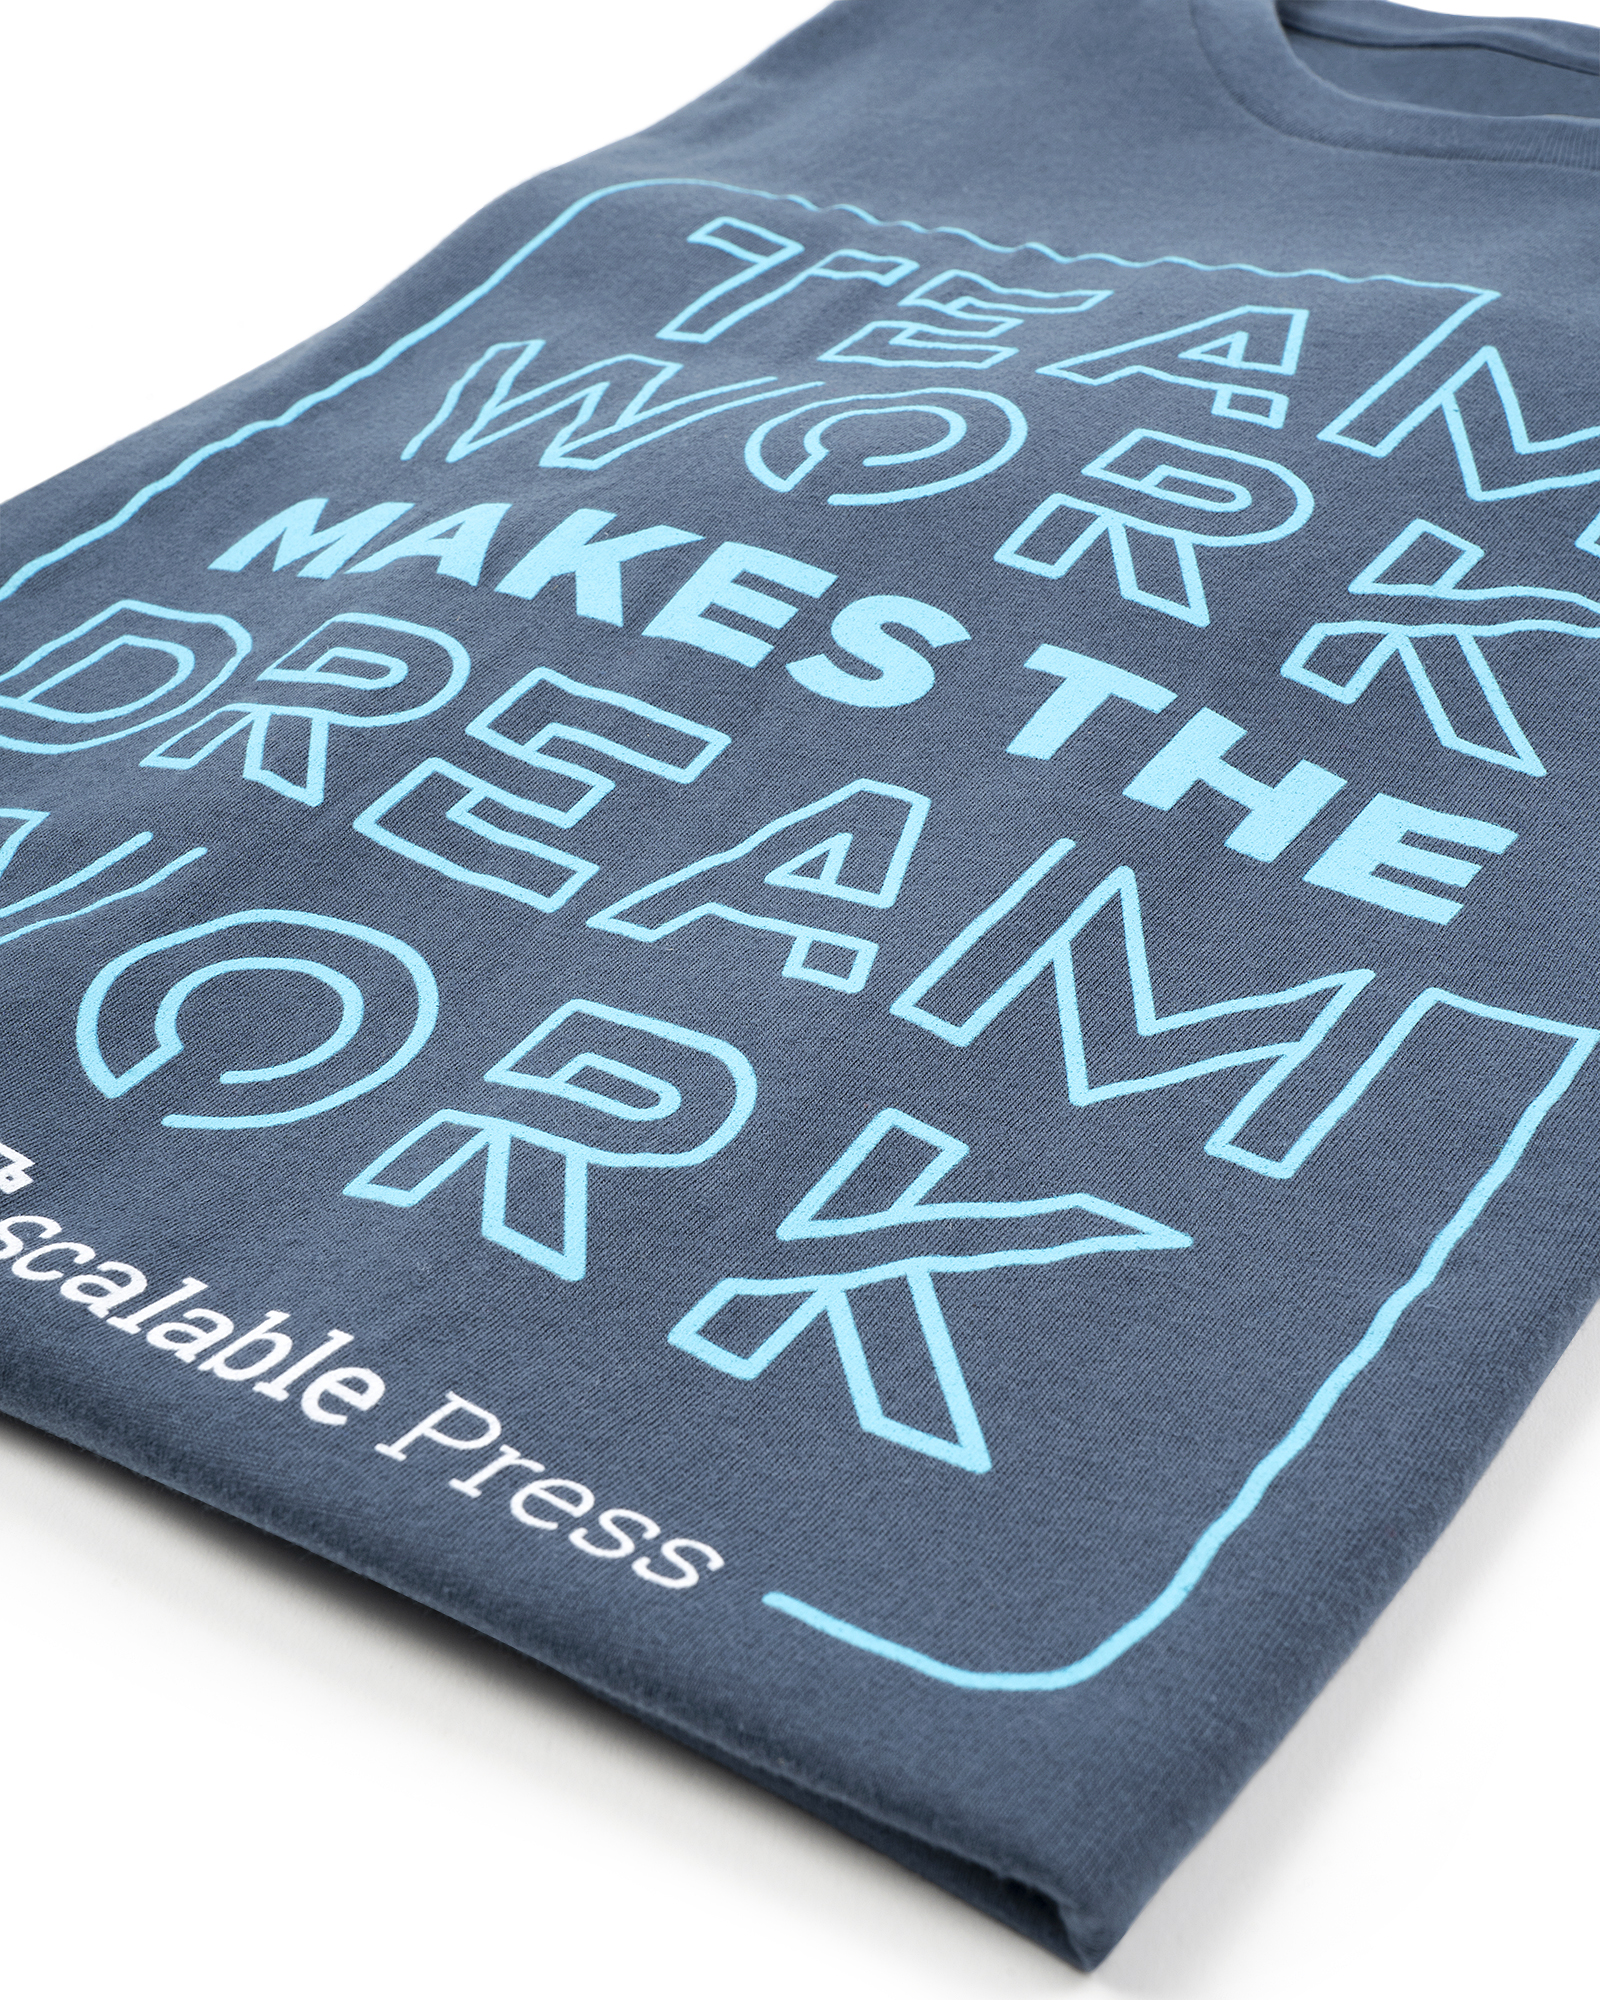 Fuel print of the Scalable Press logo on a dark blue shirt